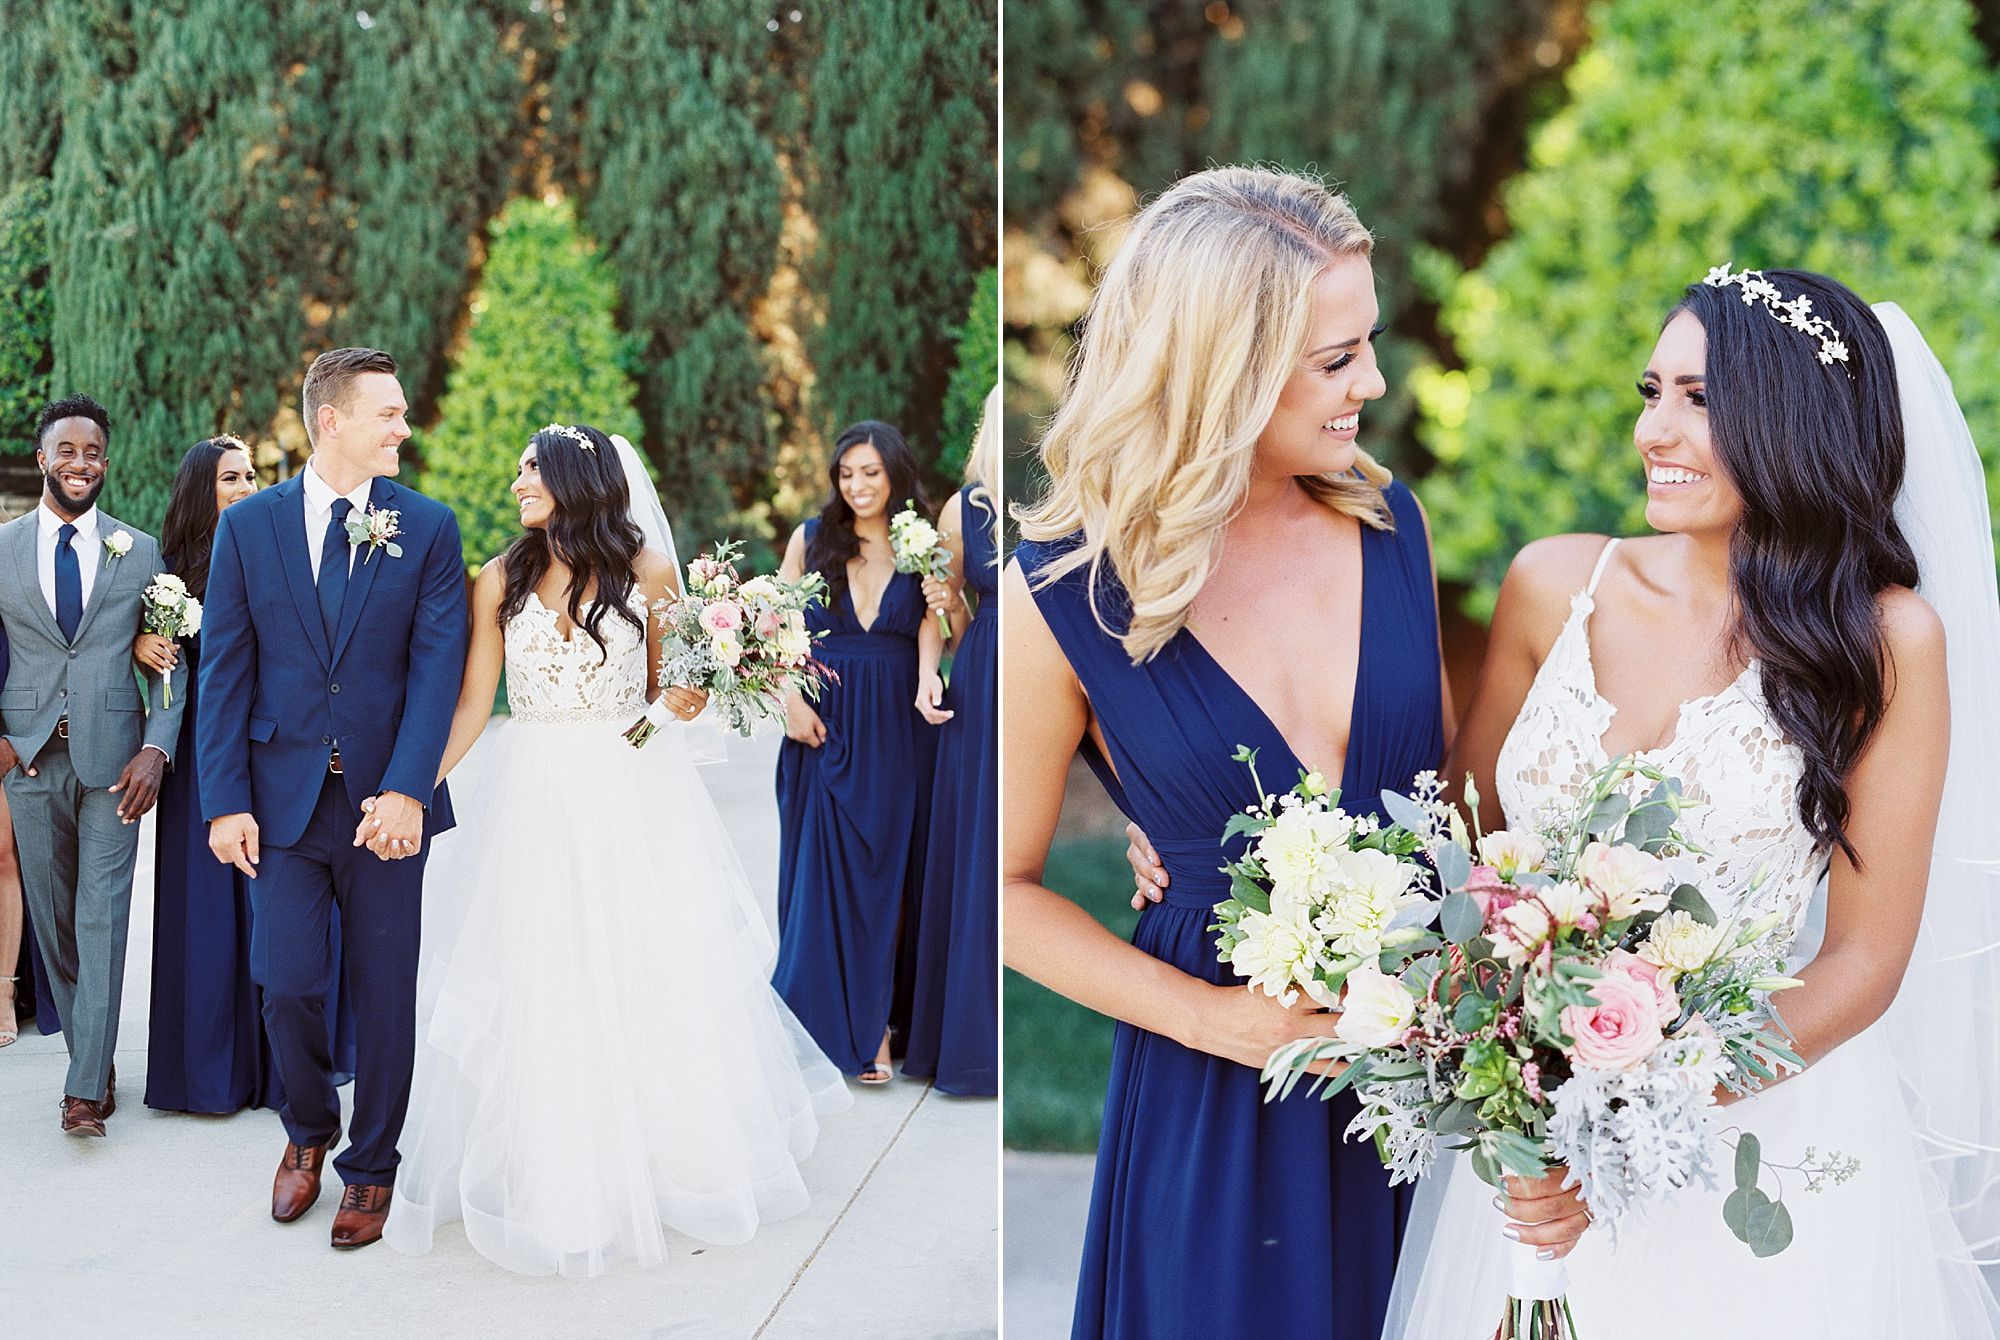 The River Mill Wedding Stockton - Ashley Baumgartner - Stockton Wedding Photographer - Sacramento Wedding Photography - Hybrid and Film Photographer - Sacramento Film Photographer_0023.jpg